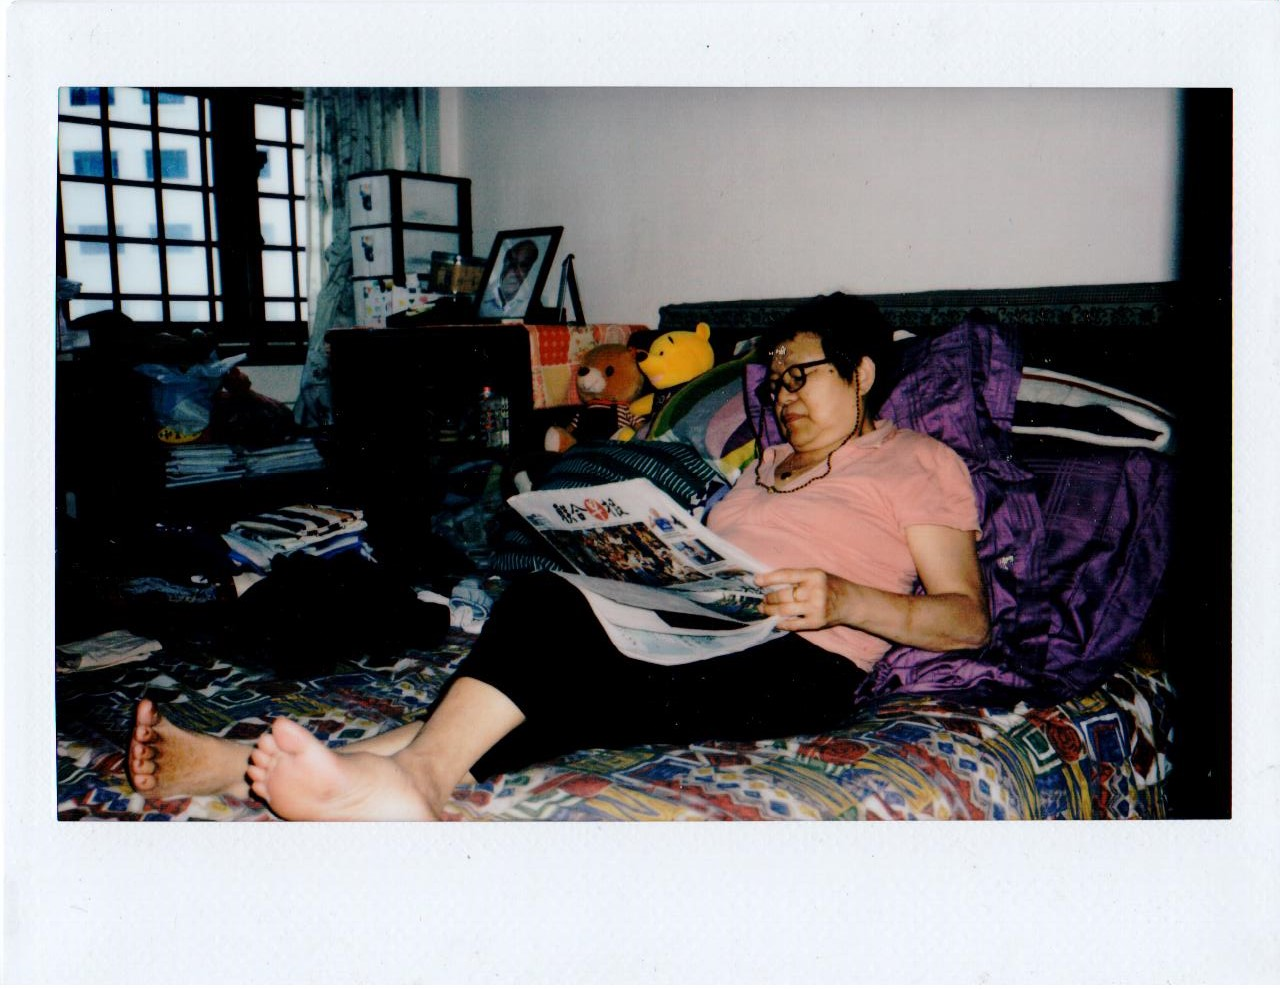 My Mother relaxing on her bed